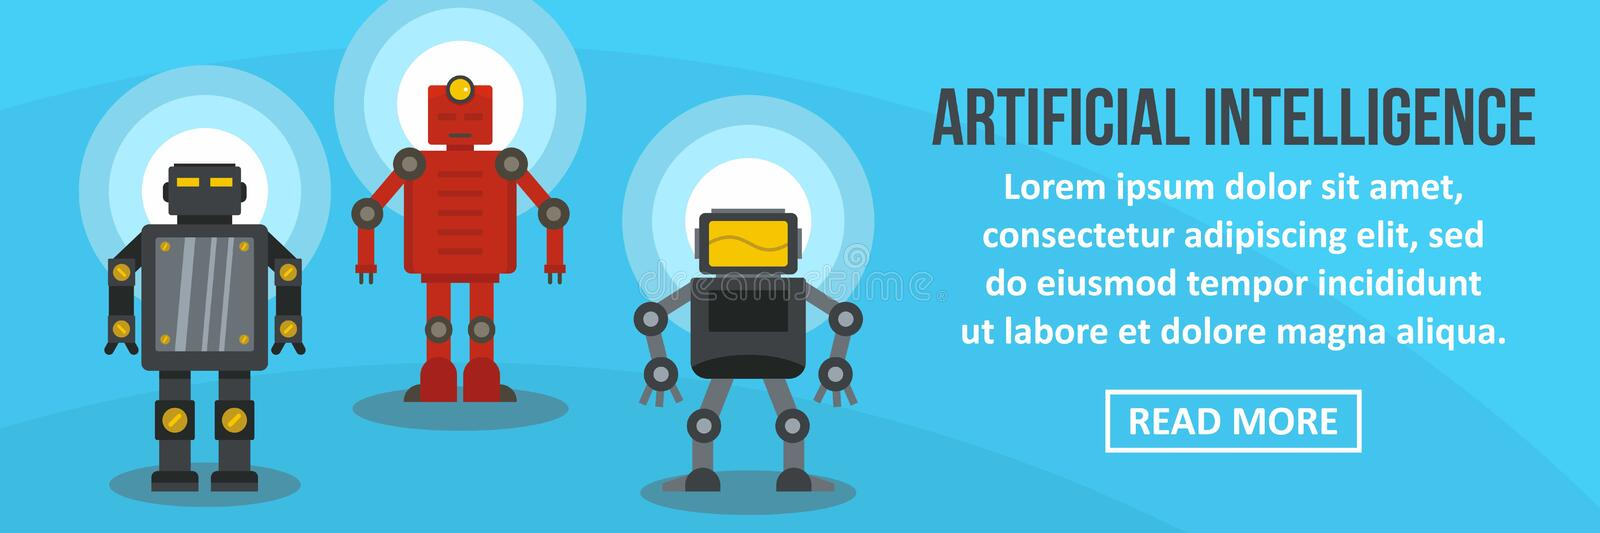 Artificial intelligence banner horizontal concept royalty free illustration